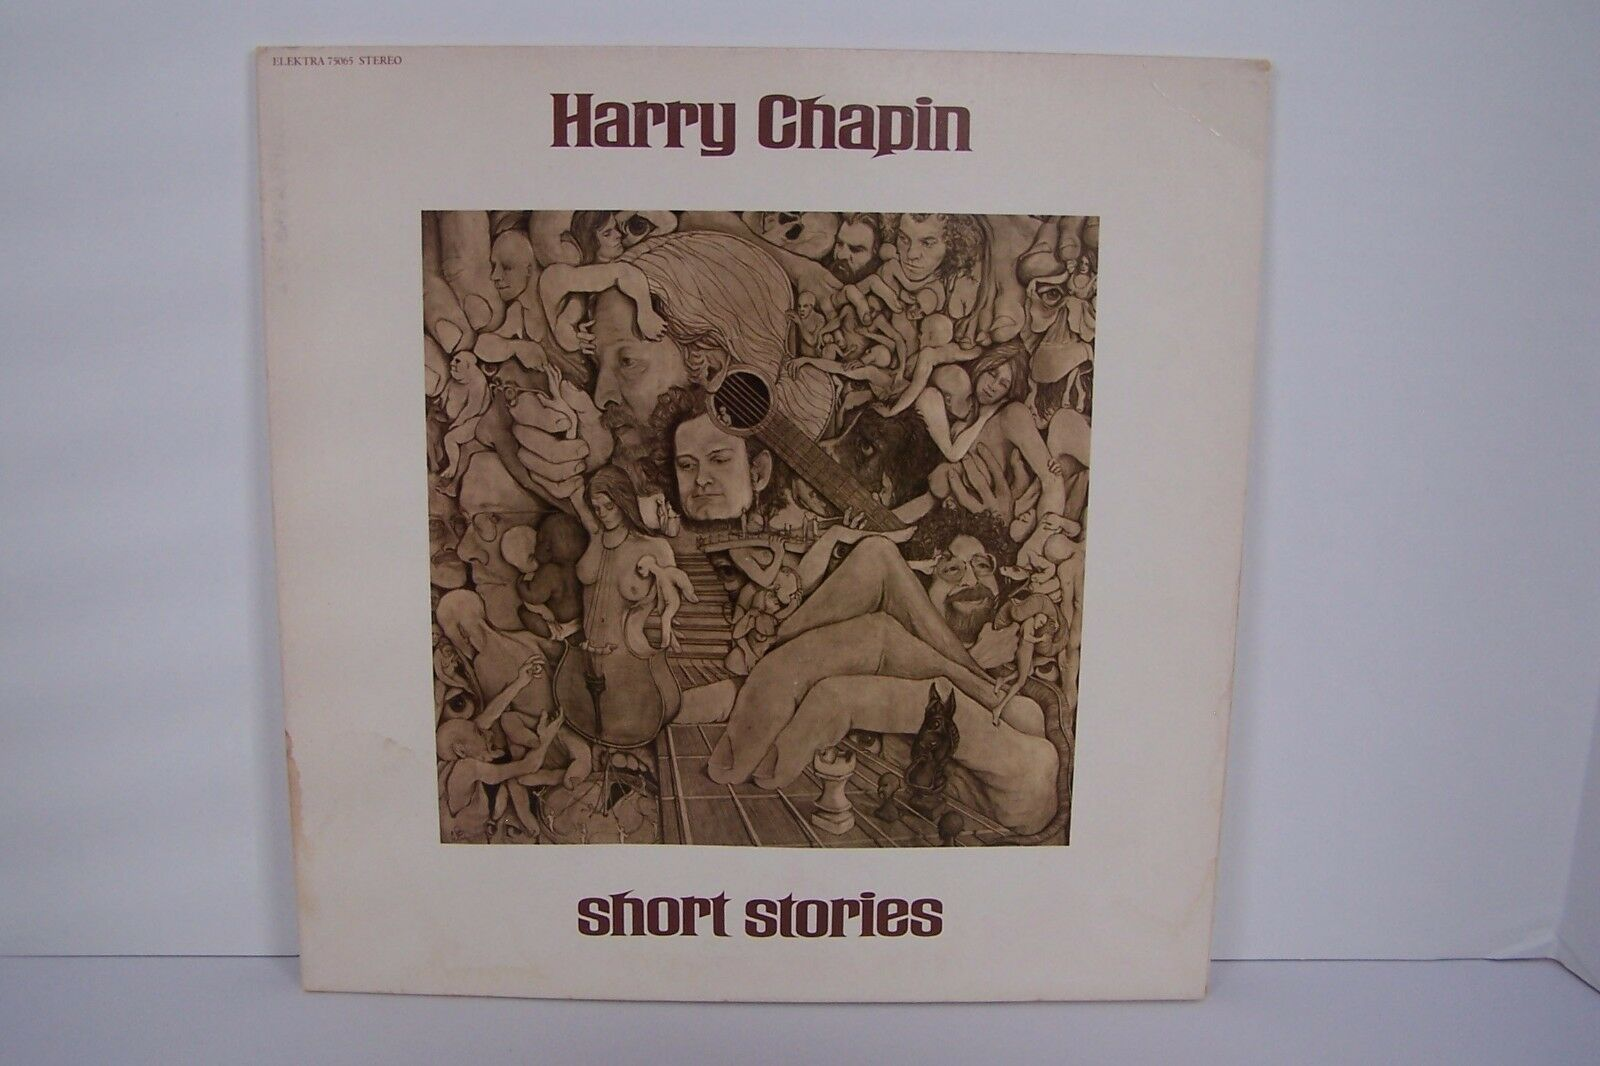 Harry Chapin - Short Stories Vinyl LP Record Album EKS